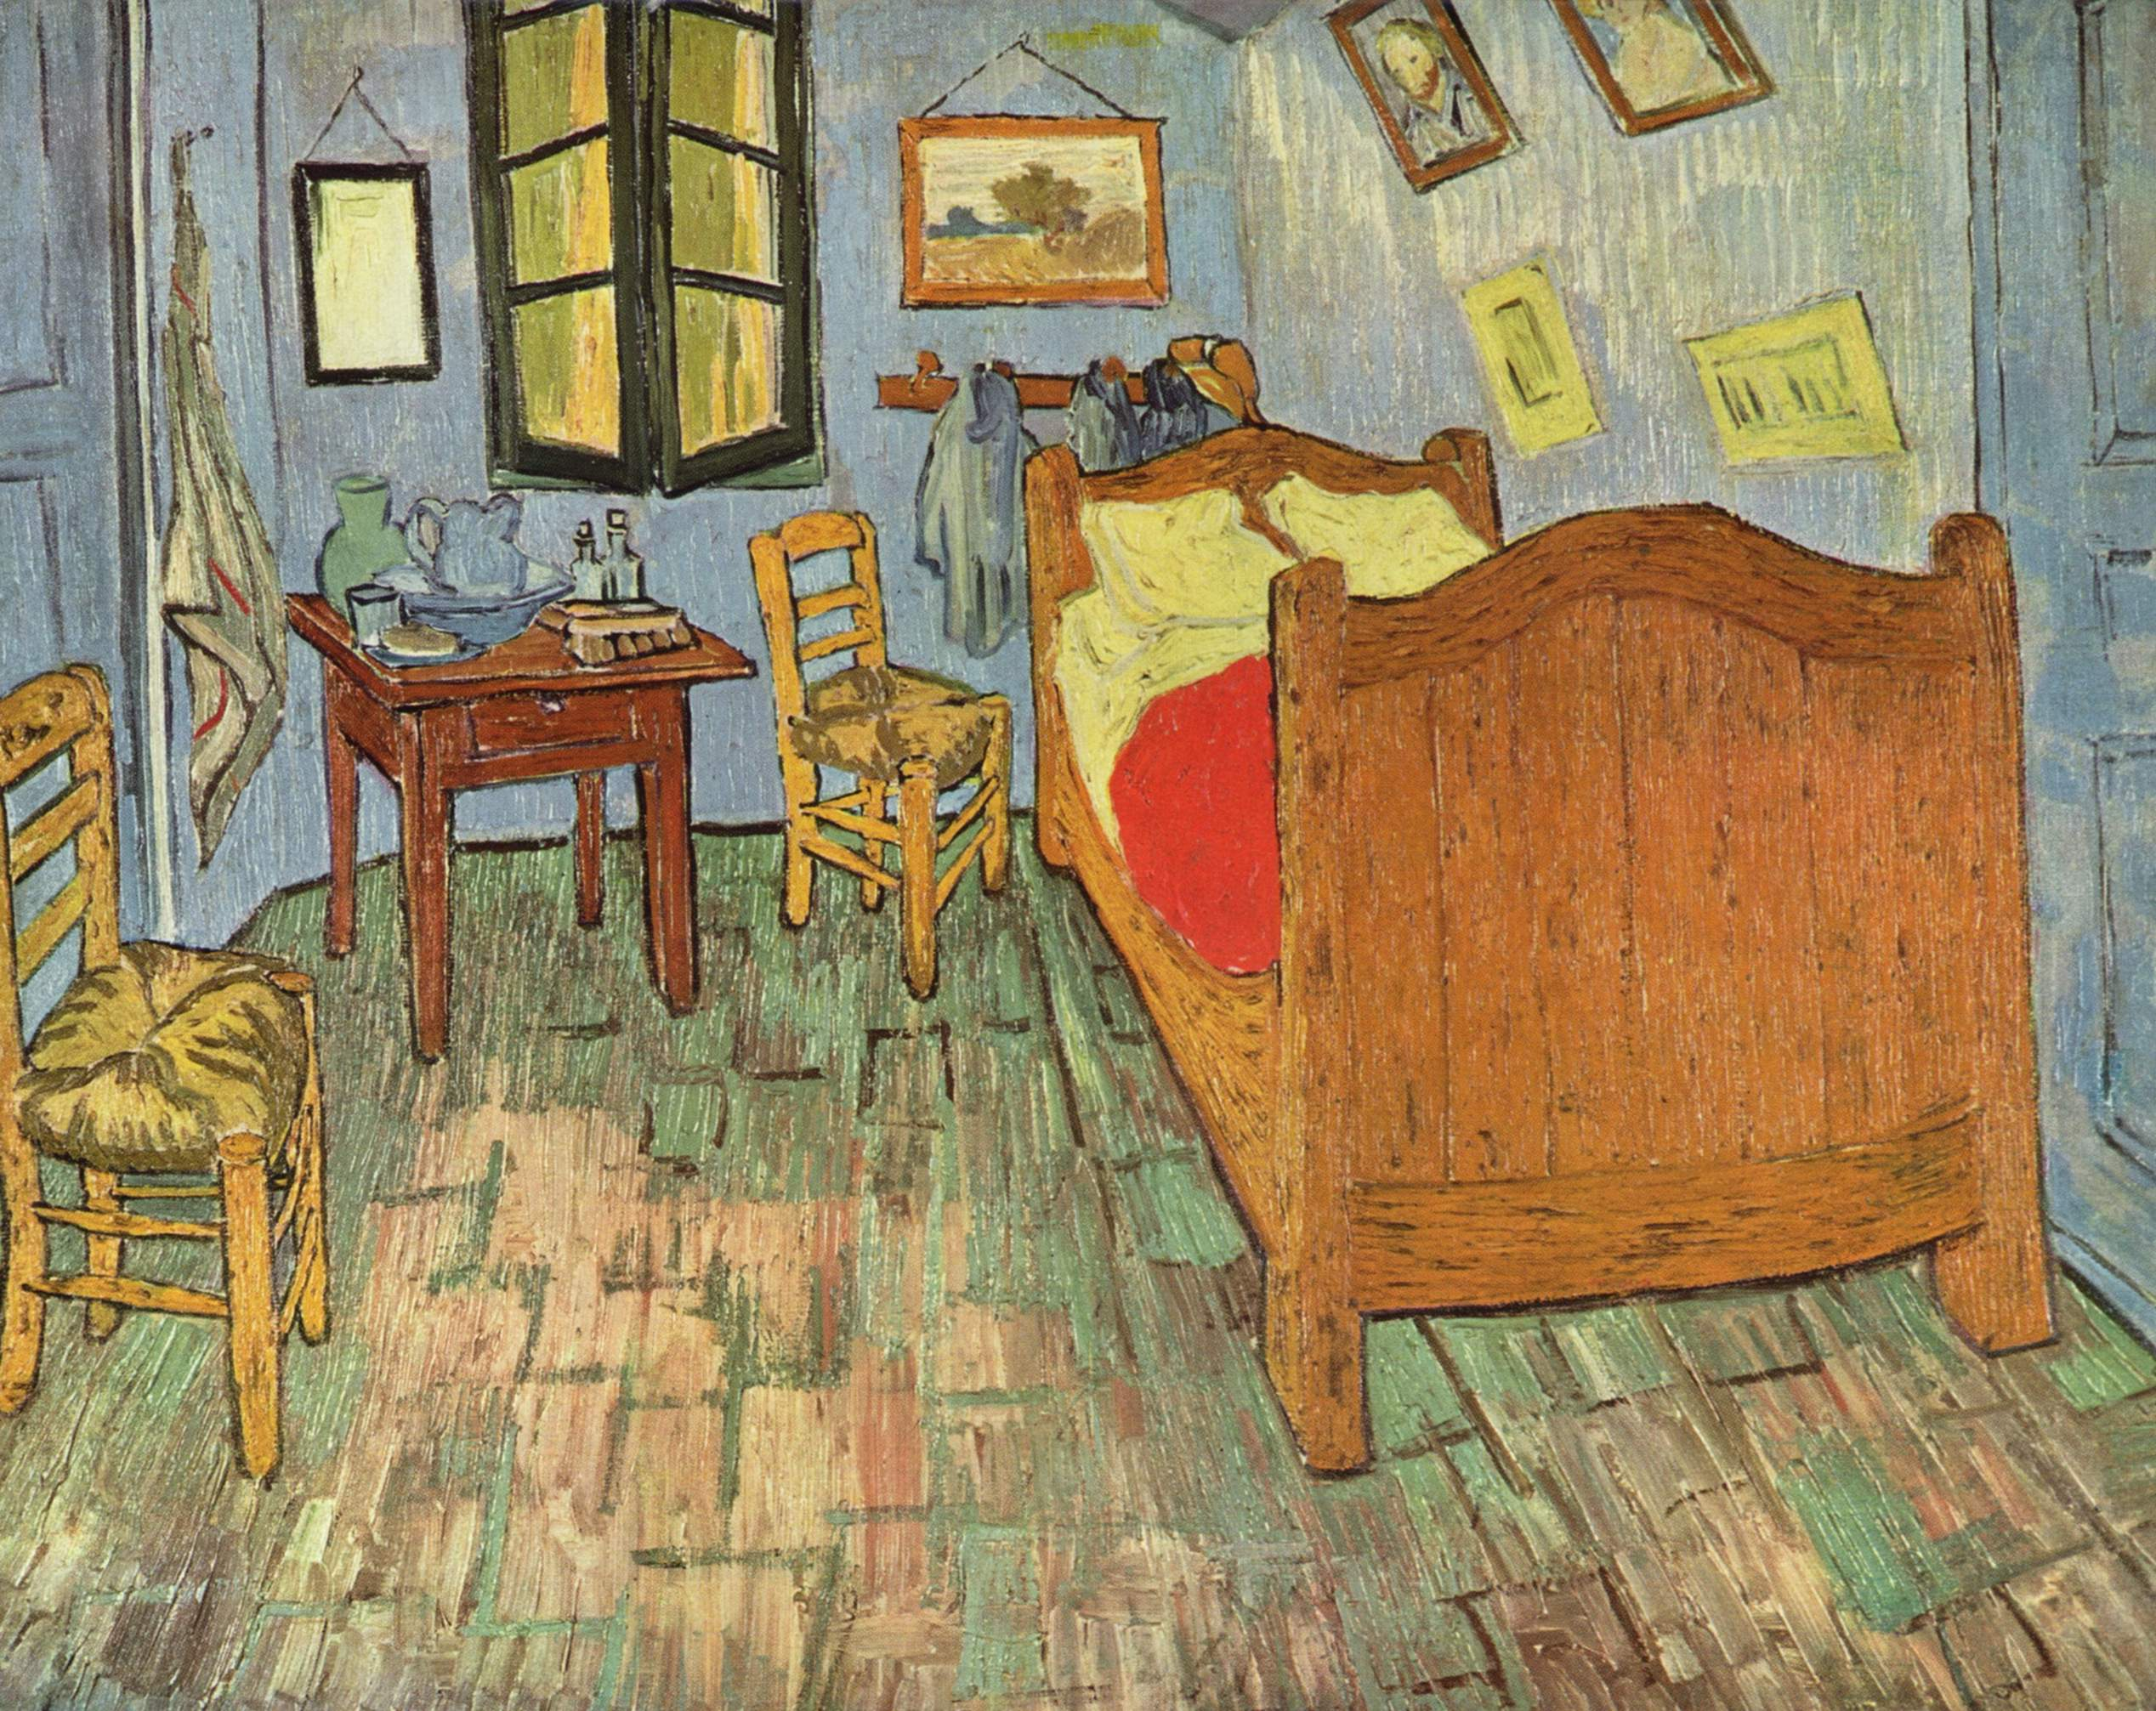 The Chamber by Vincent van Gogh, oil painting. The work shoes one-point perspective, with a vanishing point at the bottom right window pane, roughly.